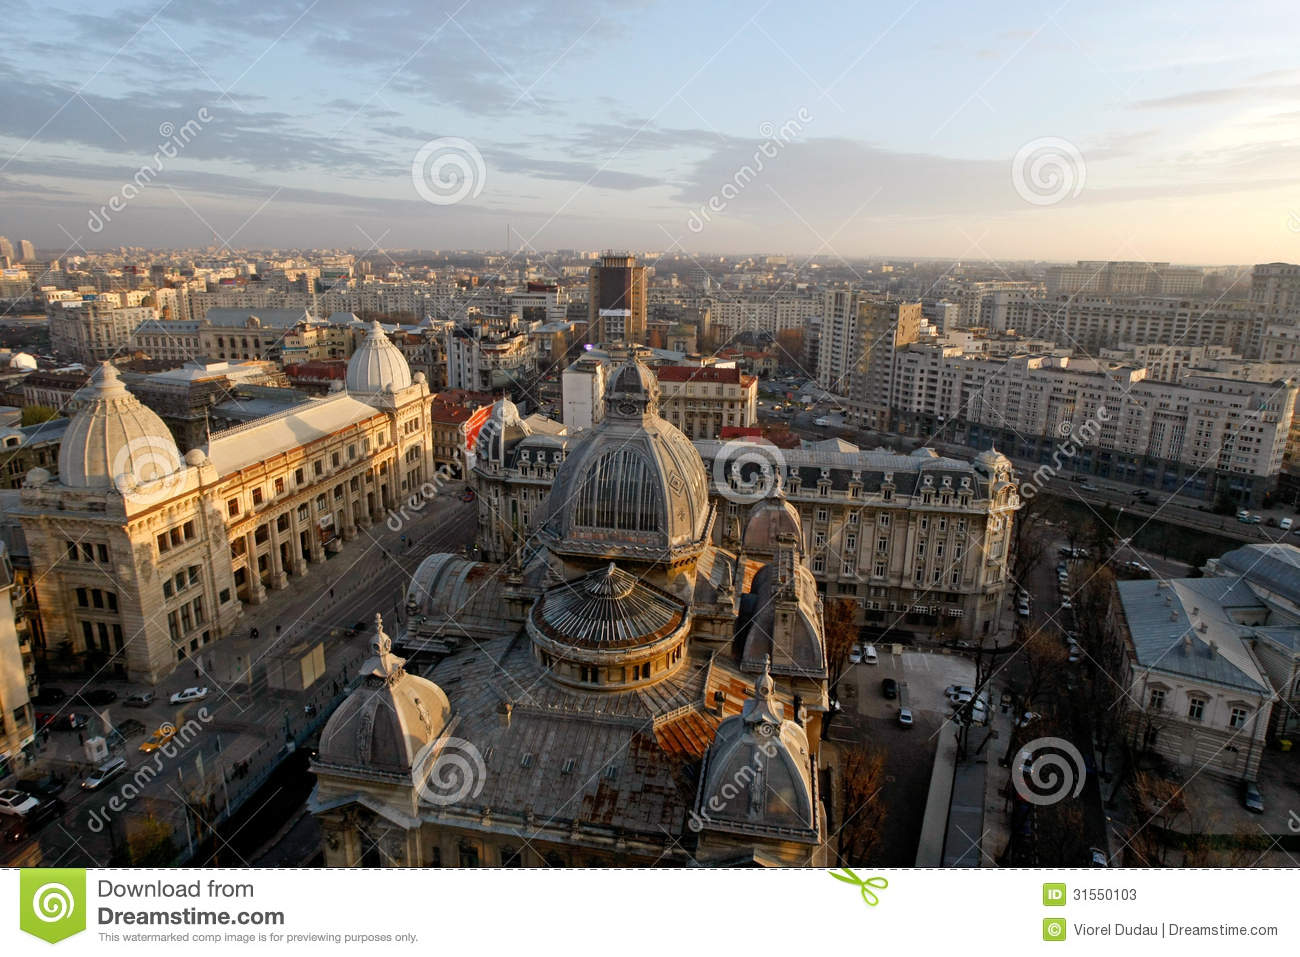 Aerial view of Calea Victoriei and CEC Palace in Bucharest